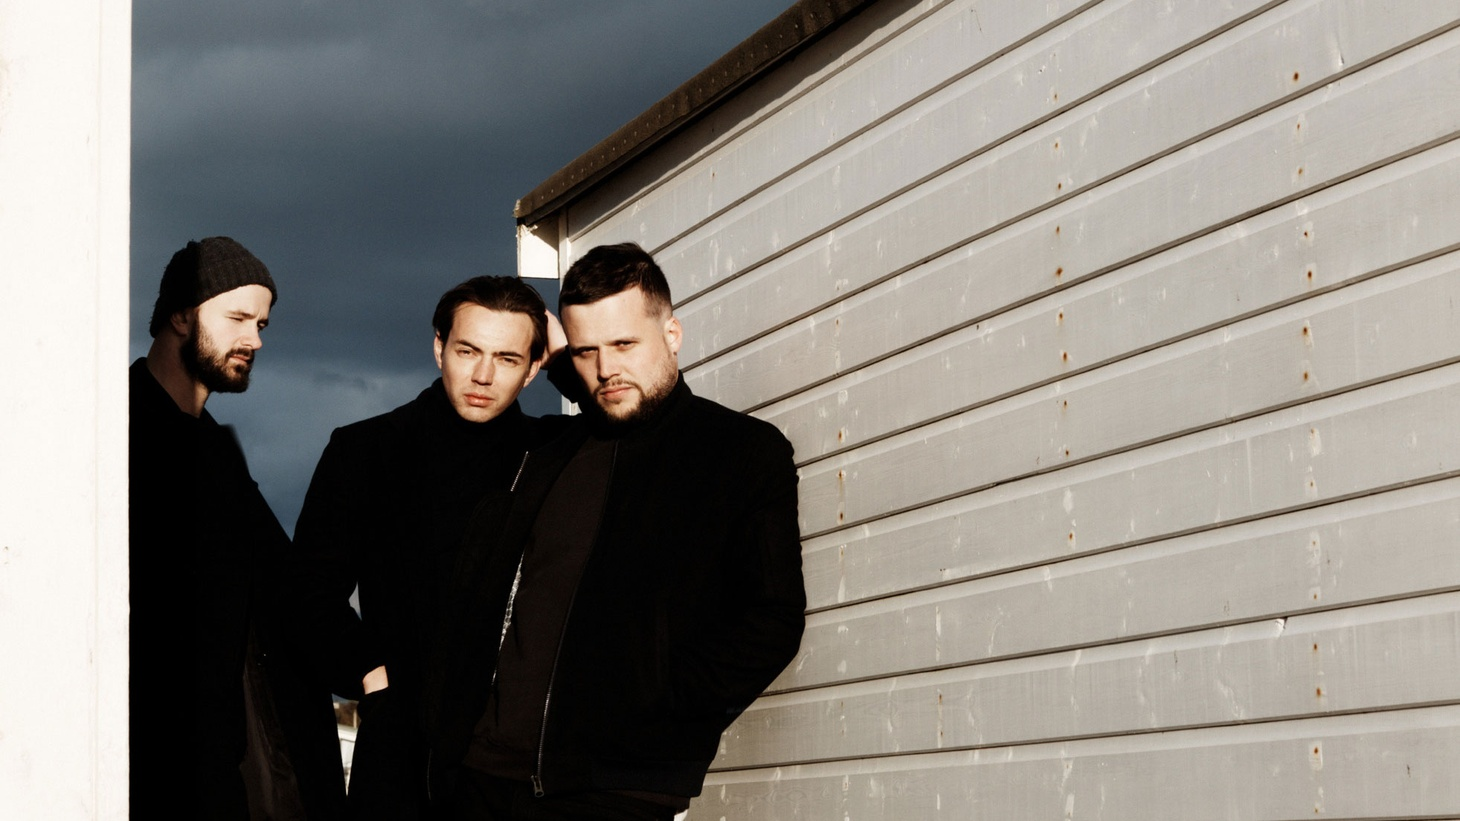 White Lies came up with a light hearted love song dedicated to our town and keeping friendships alive across the tyranny of time zones.